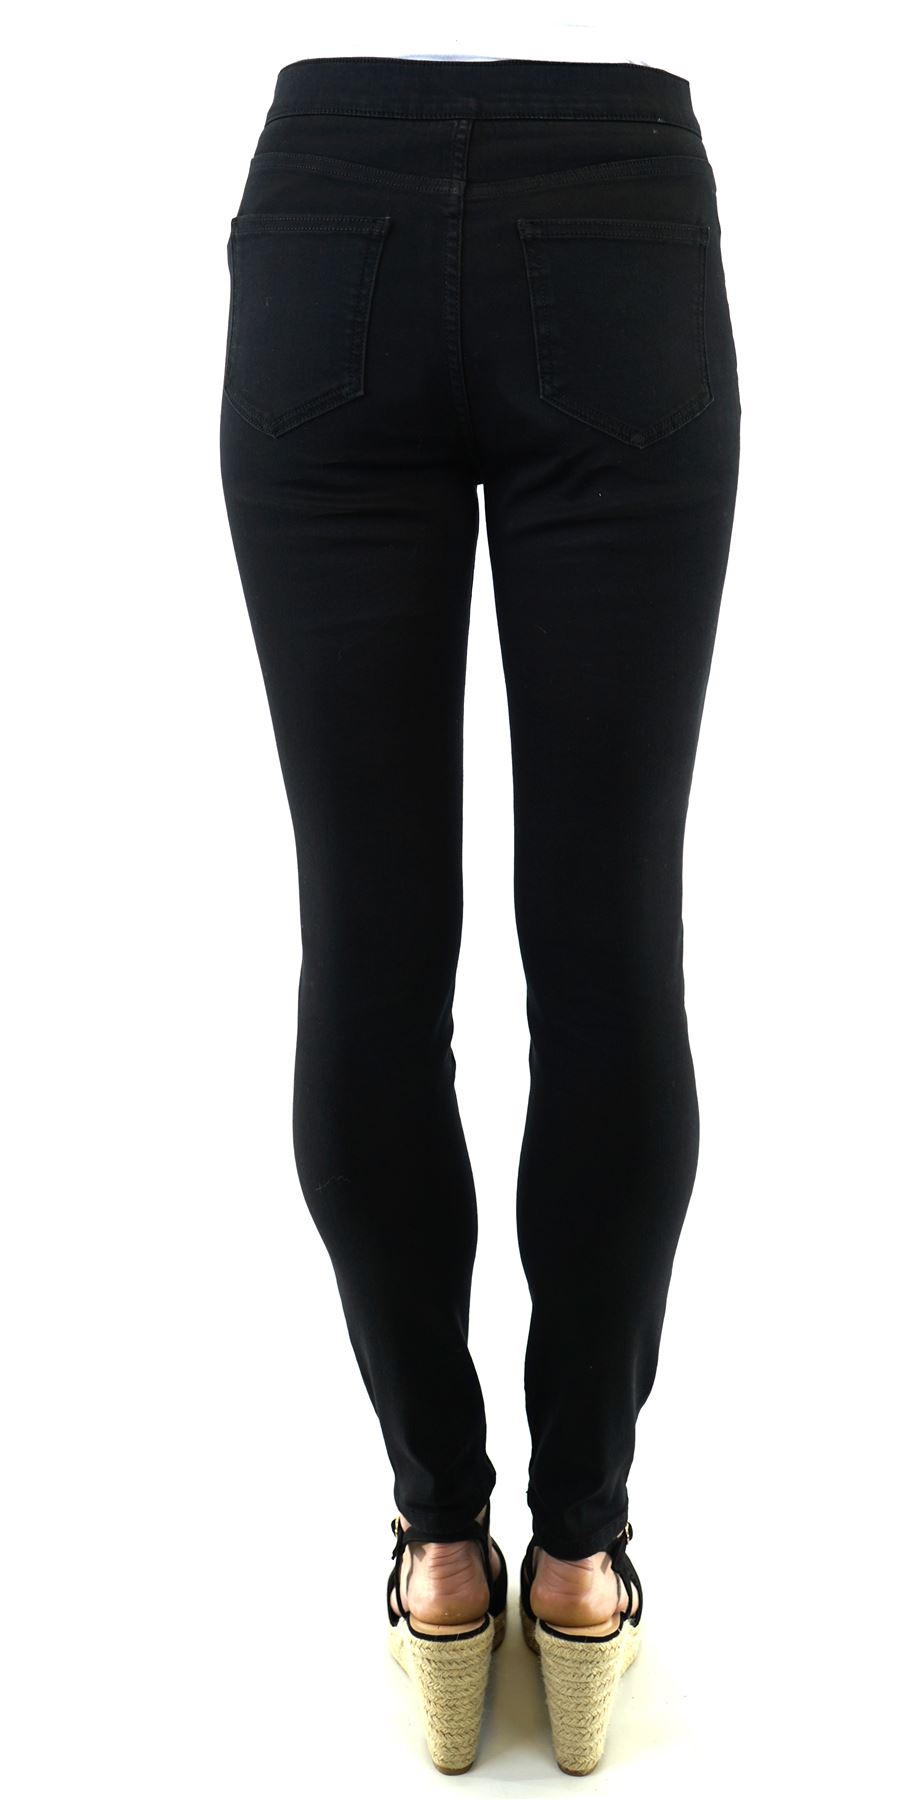 thumbnail 46 - Karen Millen Womens Casual Black Denim Button Jegging Ladies Jean Stylish Gift